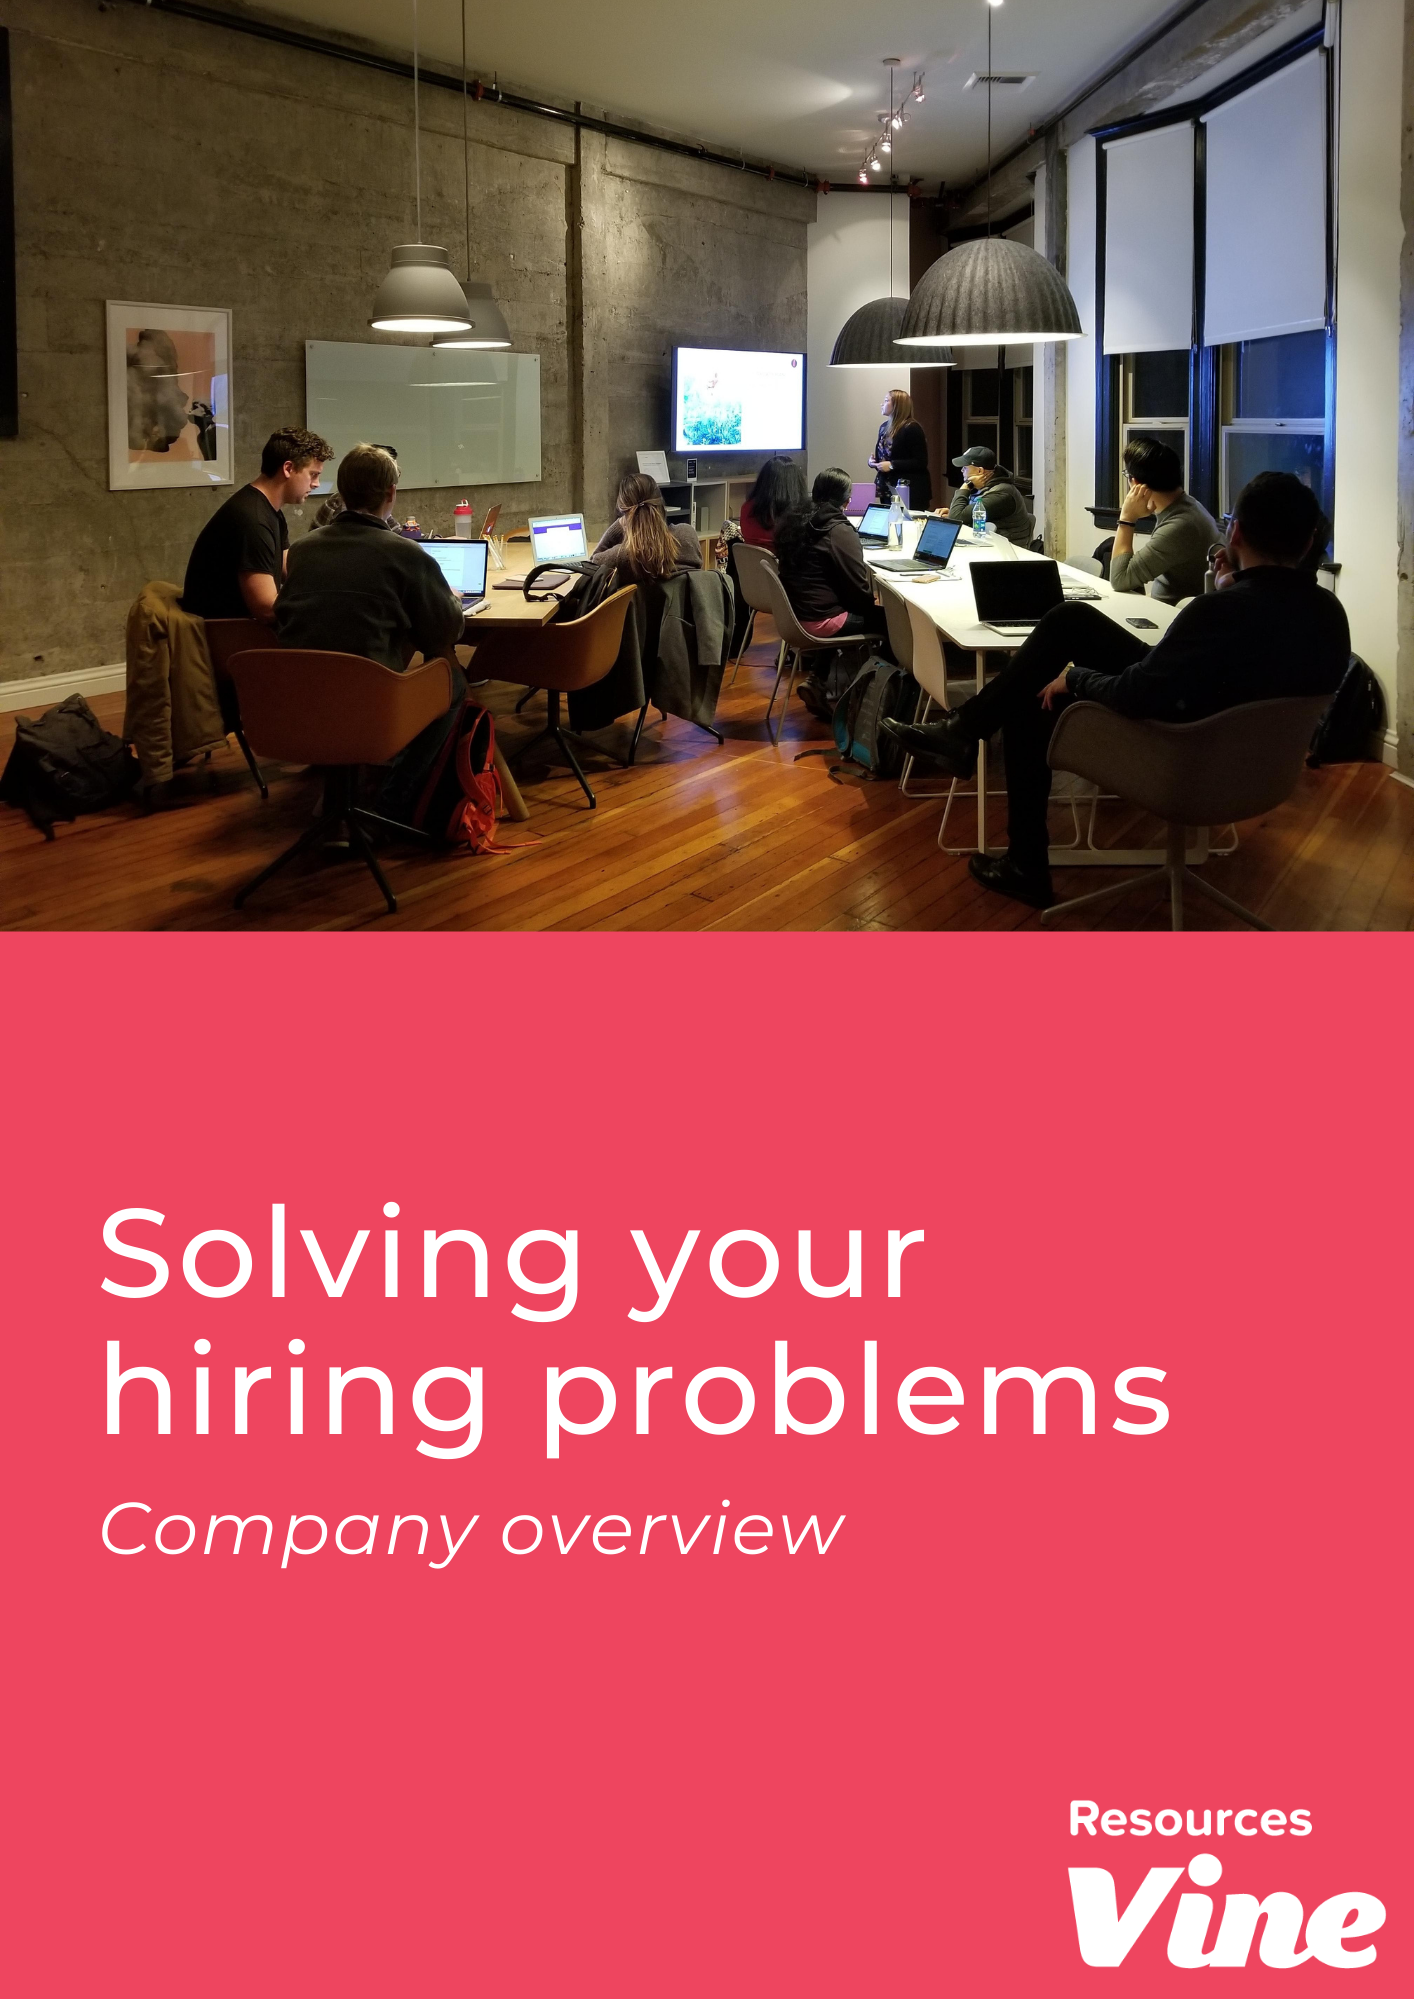 Image - Solving your hiring problems - Vine Resources